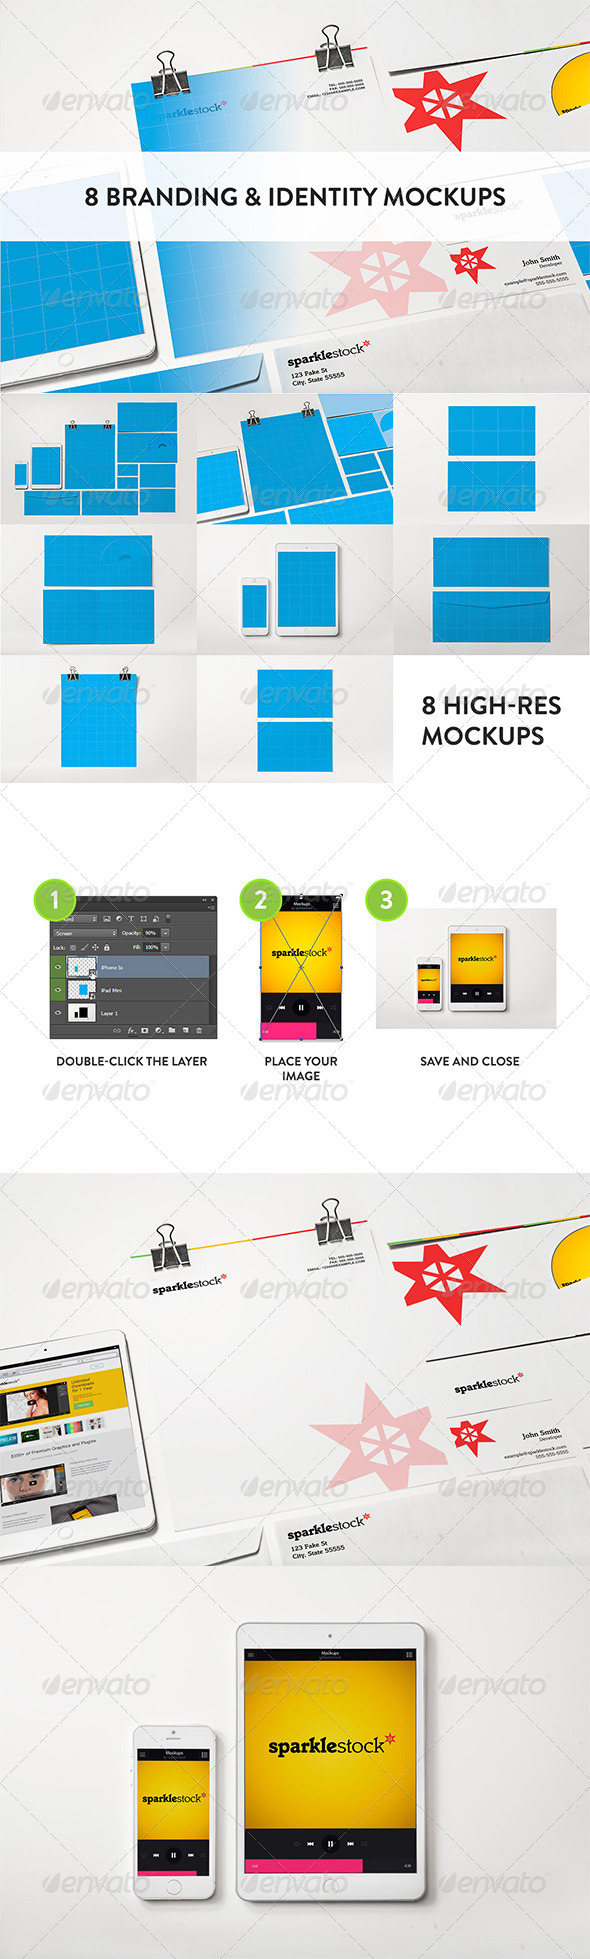 GraphicRiver 8 Clean Identity & Branding Mockups 8494828